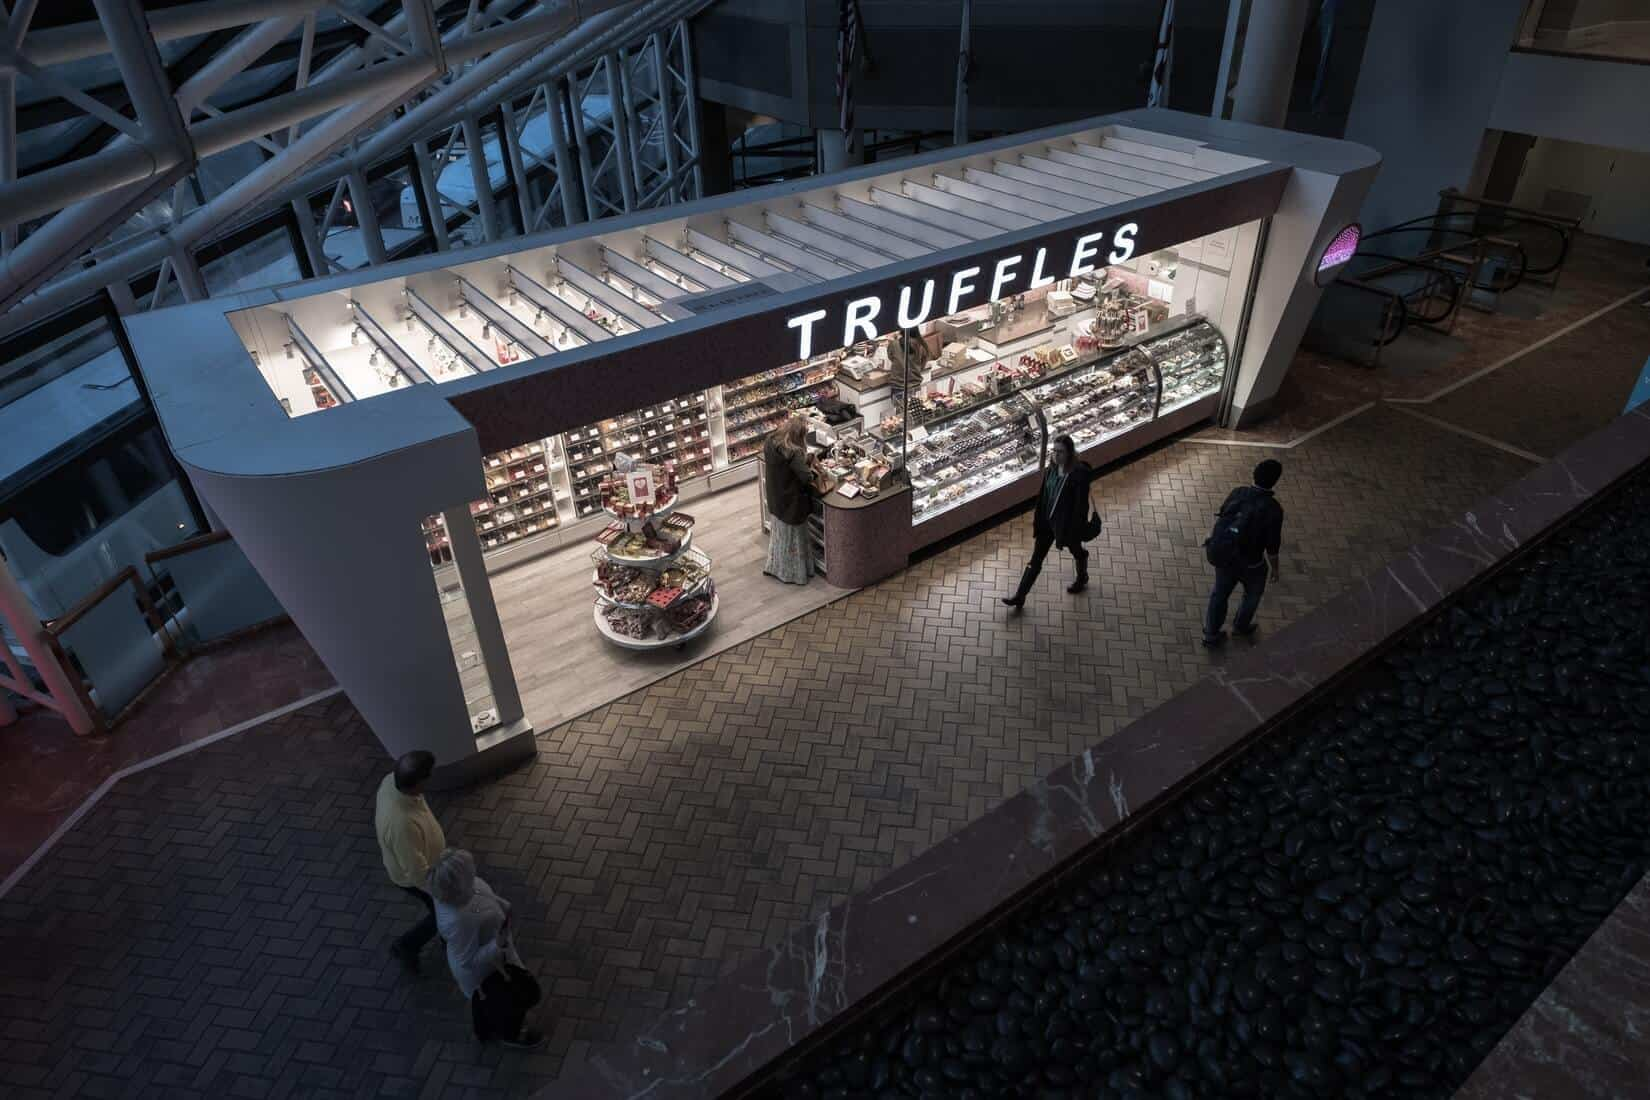 Truffels Shop as a symbol for luxury